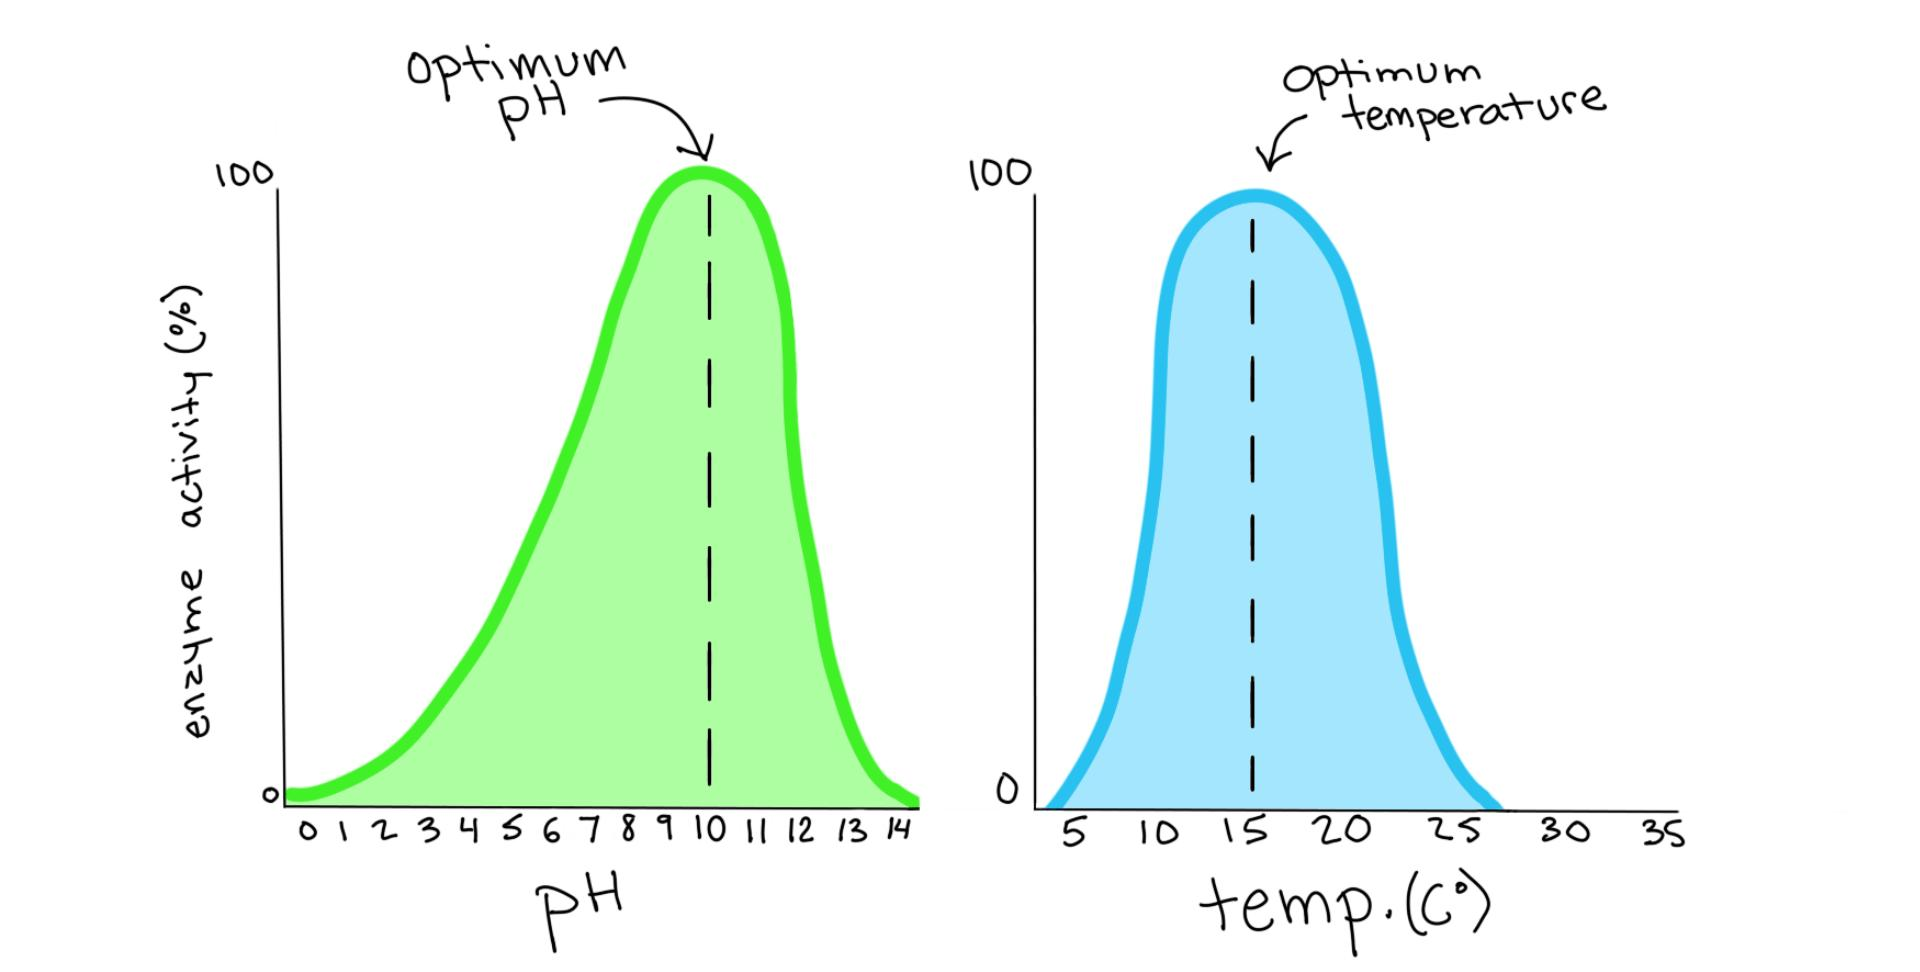 hight resolution of two graphs showing the level of activity for a certain enzyme at different ph and temperatures